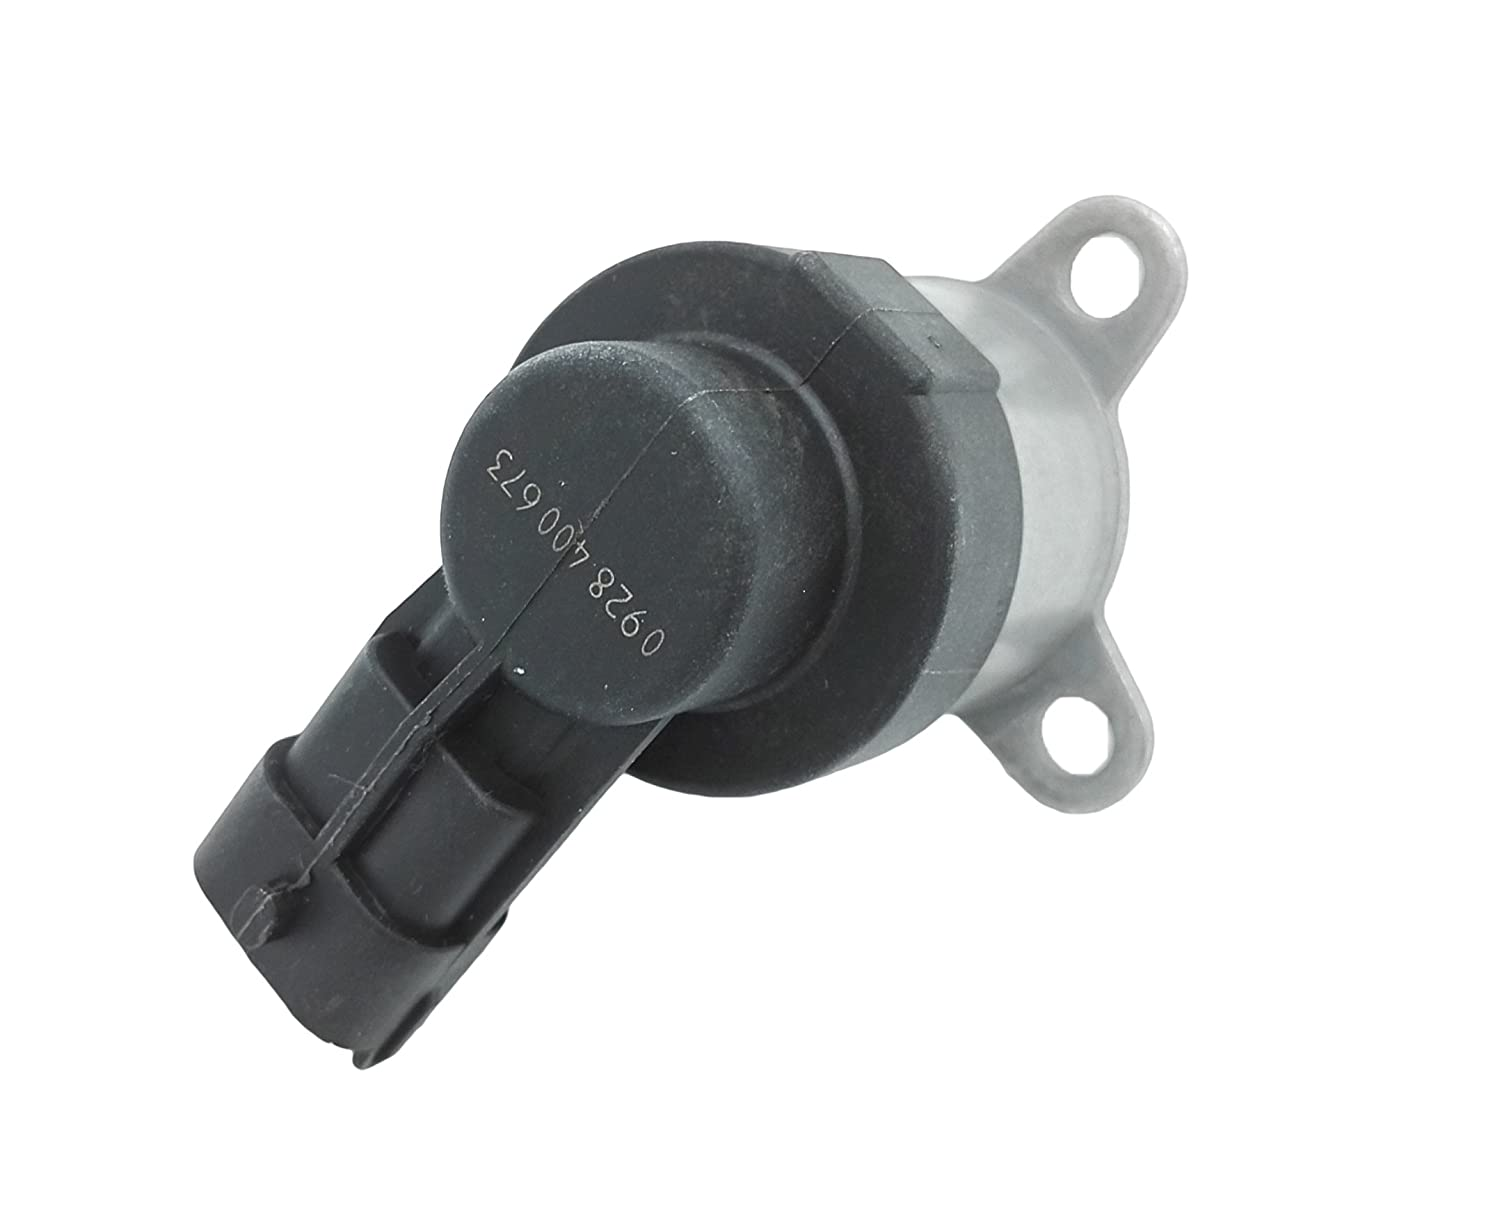 Amazon.com: Fuel Pressure Regulator for 06-2010 GM GMC/Chevy Duramax LBZ-LMM Diesel MPROP 0928400673: Automotive